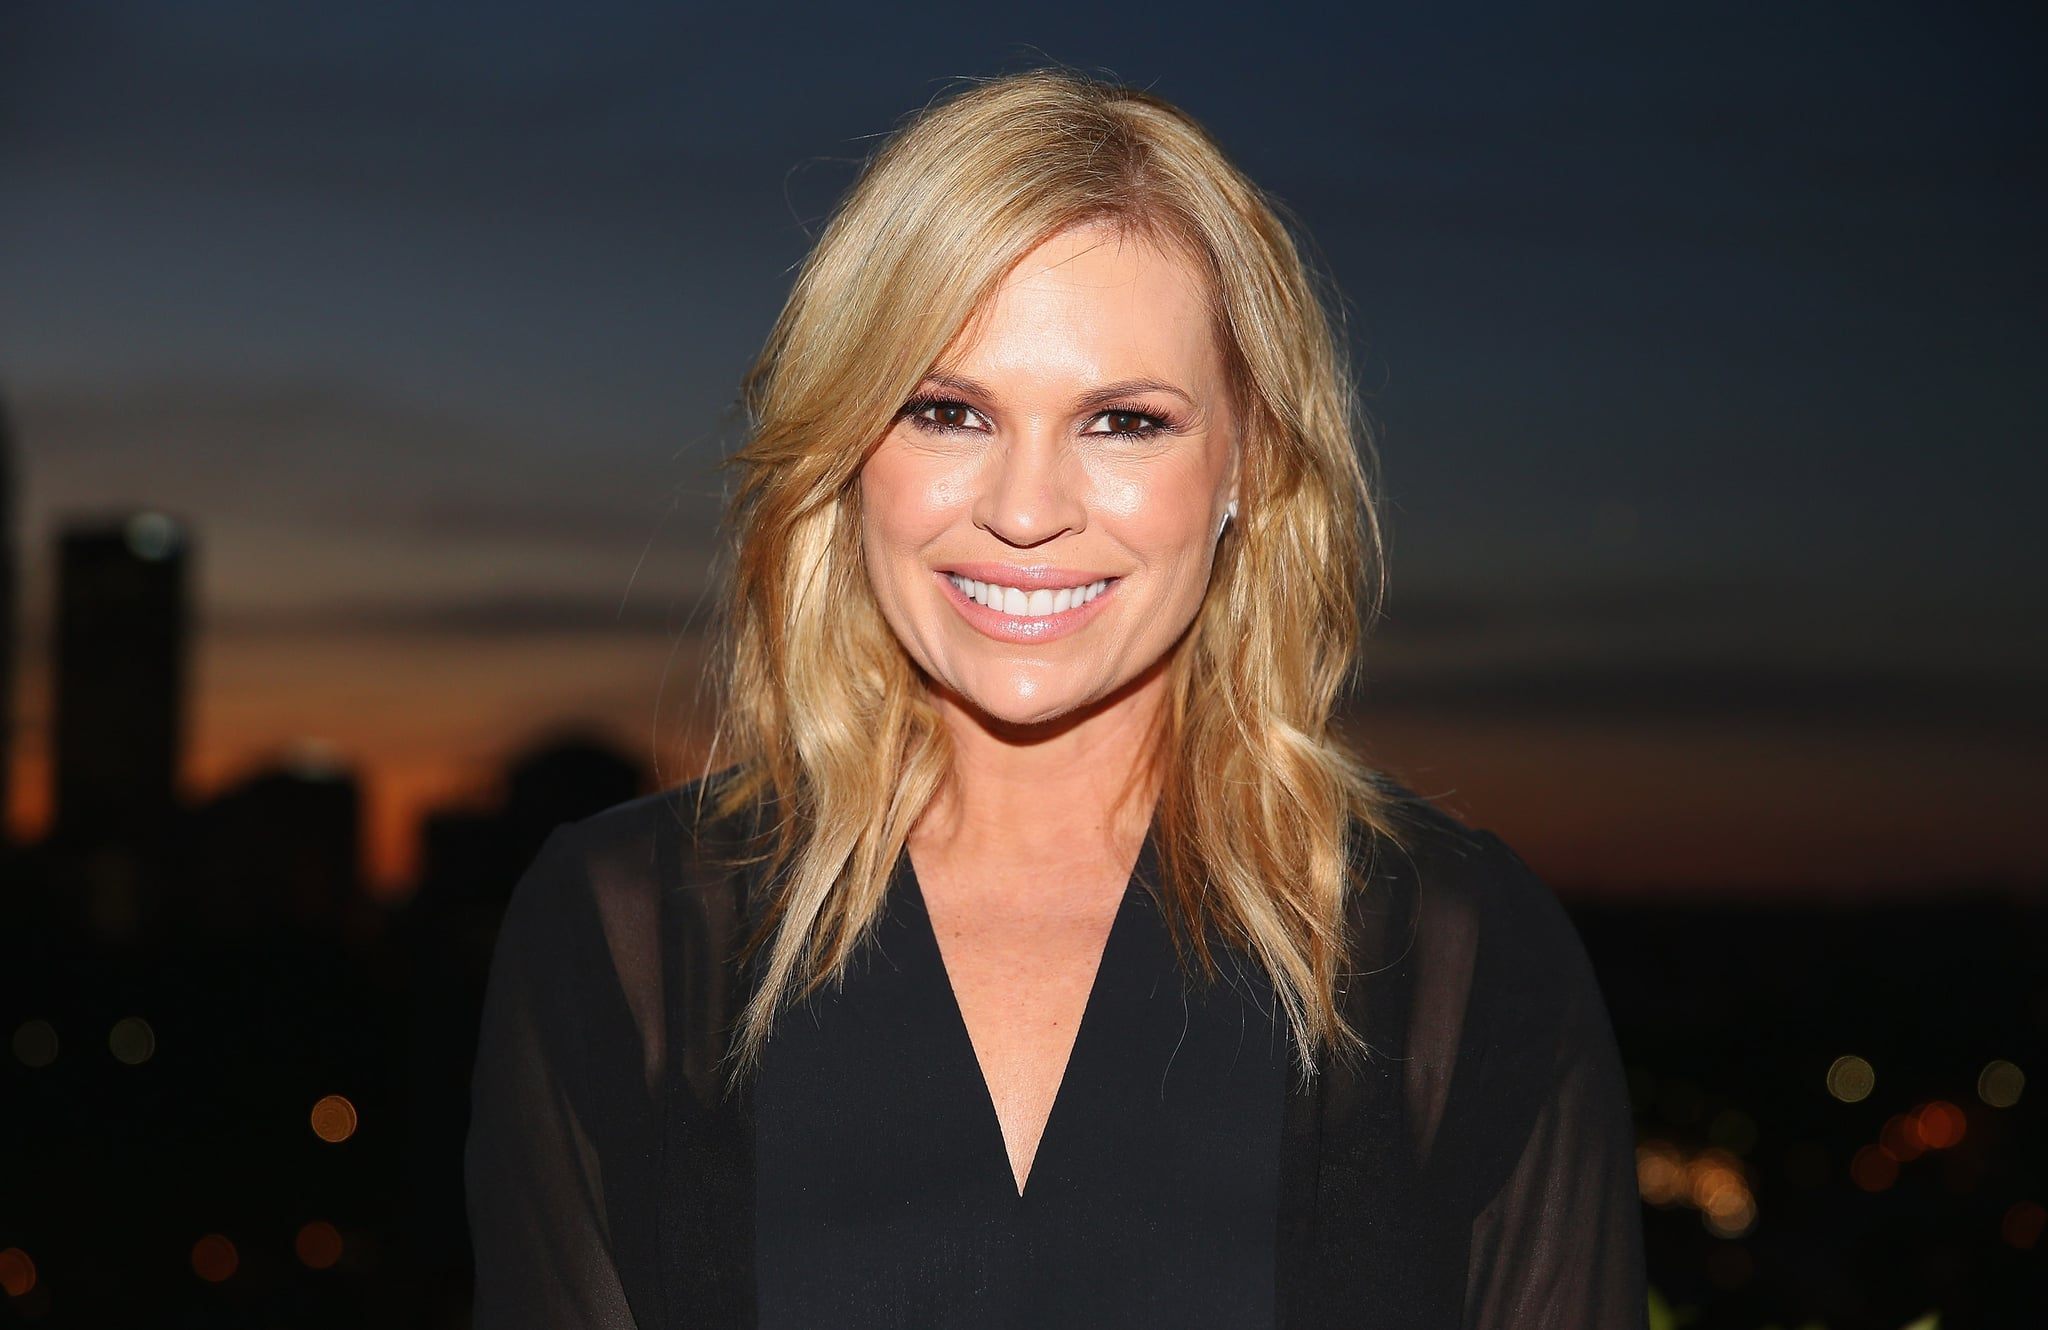 Sonia Kruger in hot water over anti-Islam comments